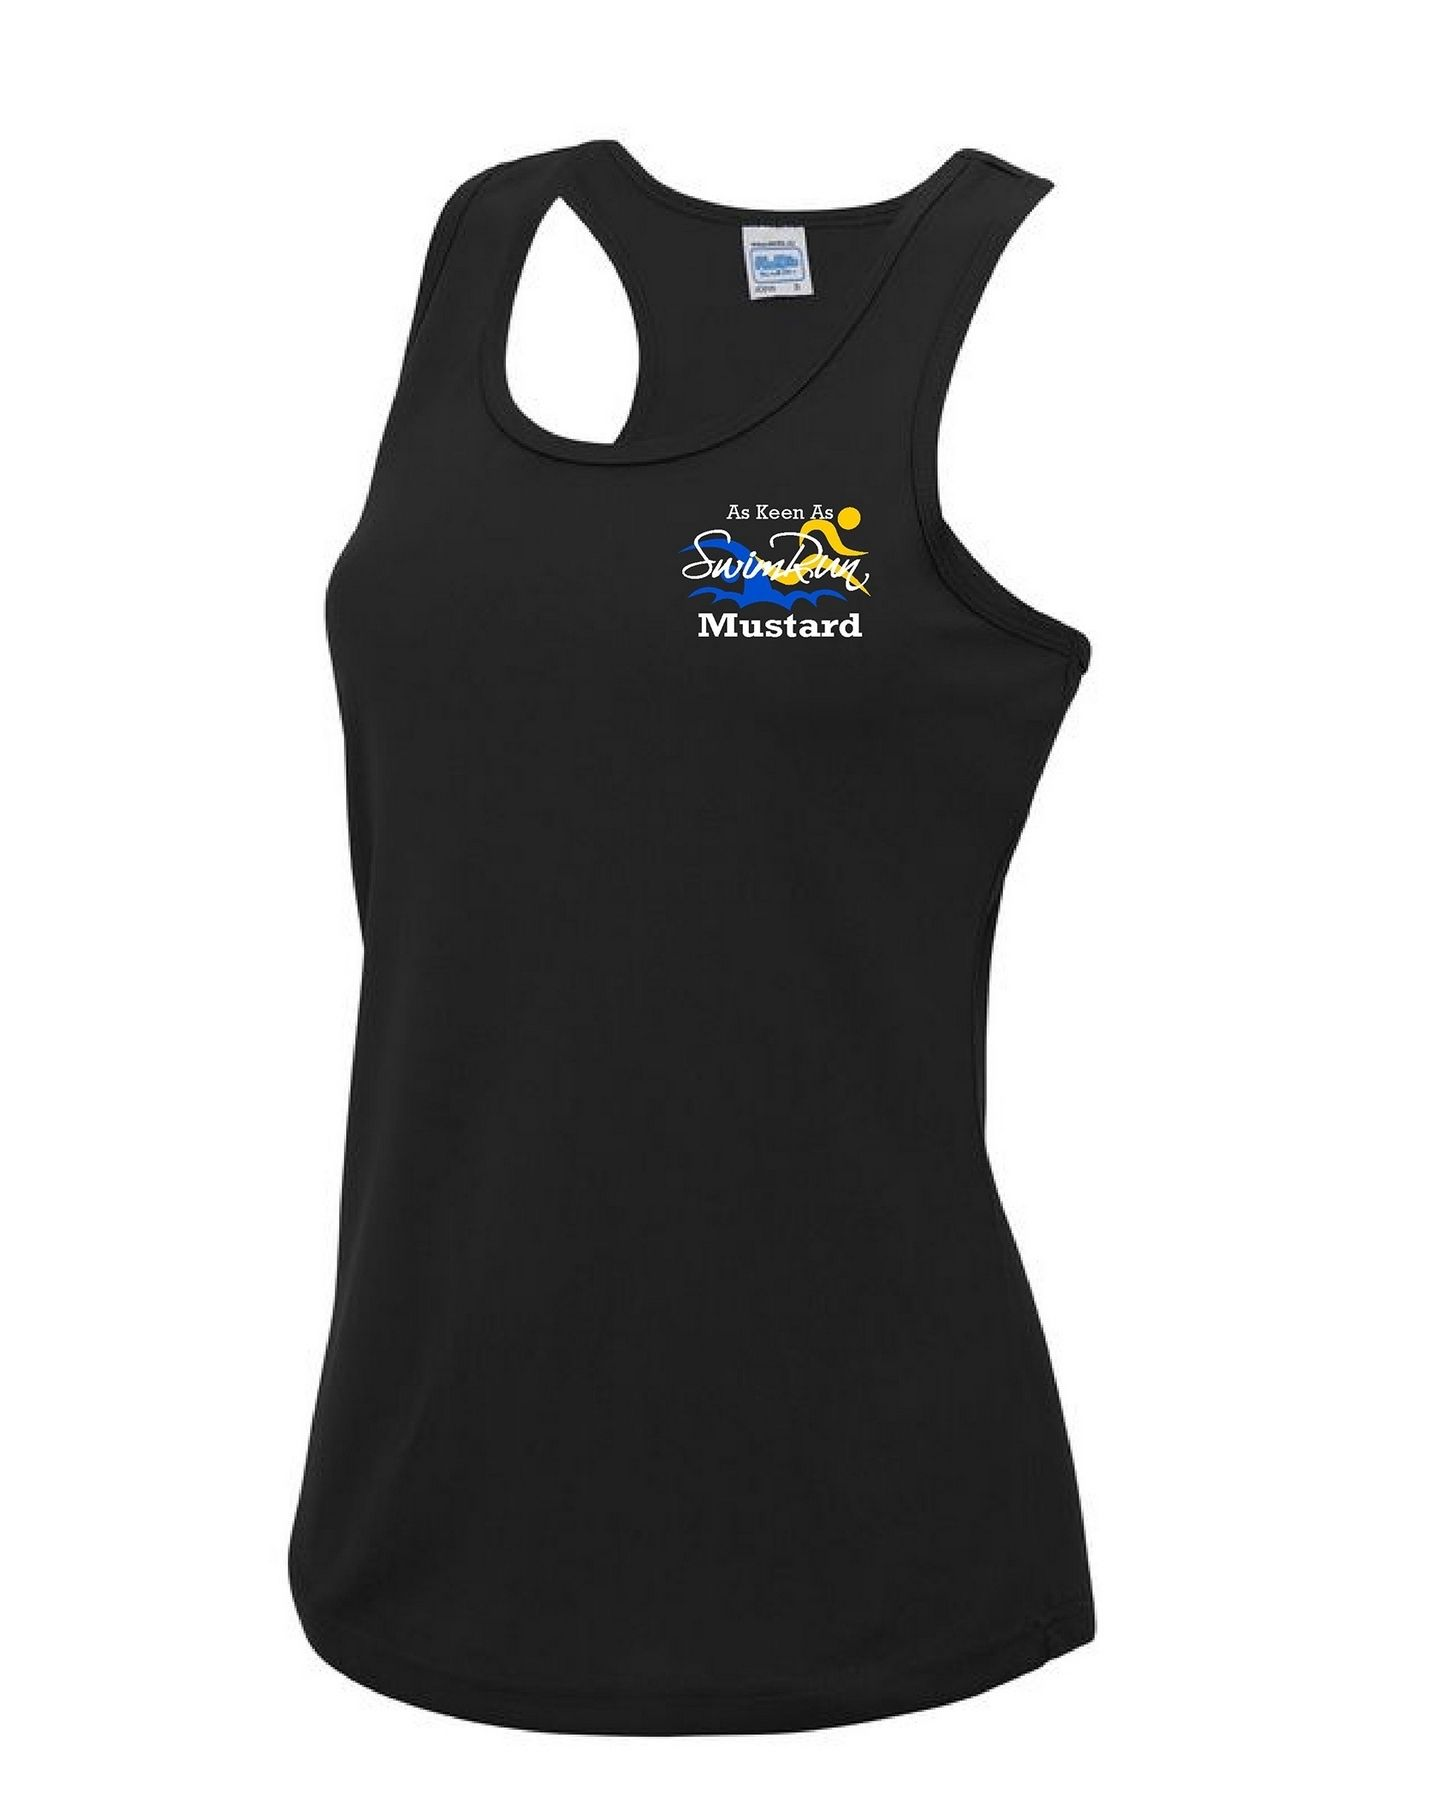 As Keen As Mustard – Sports Vest (Ladies)